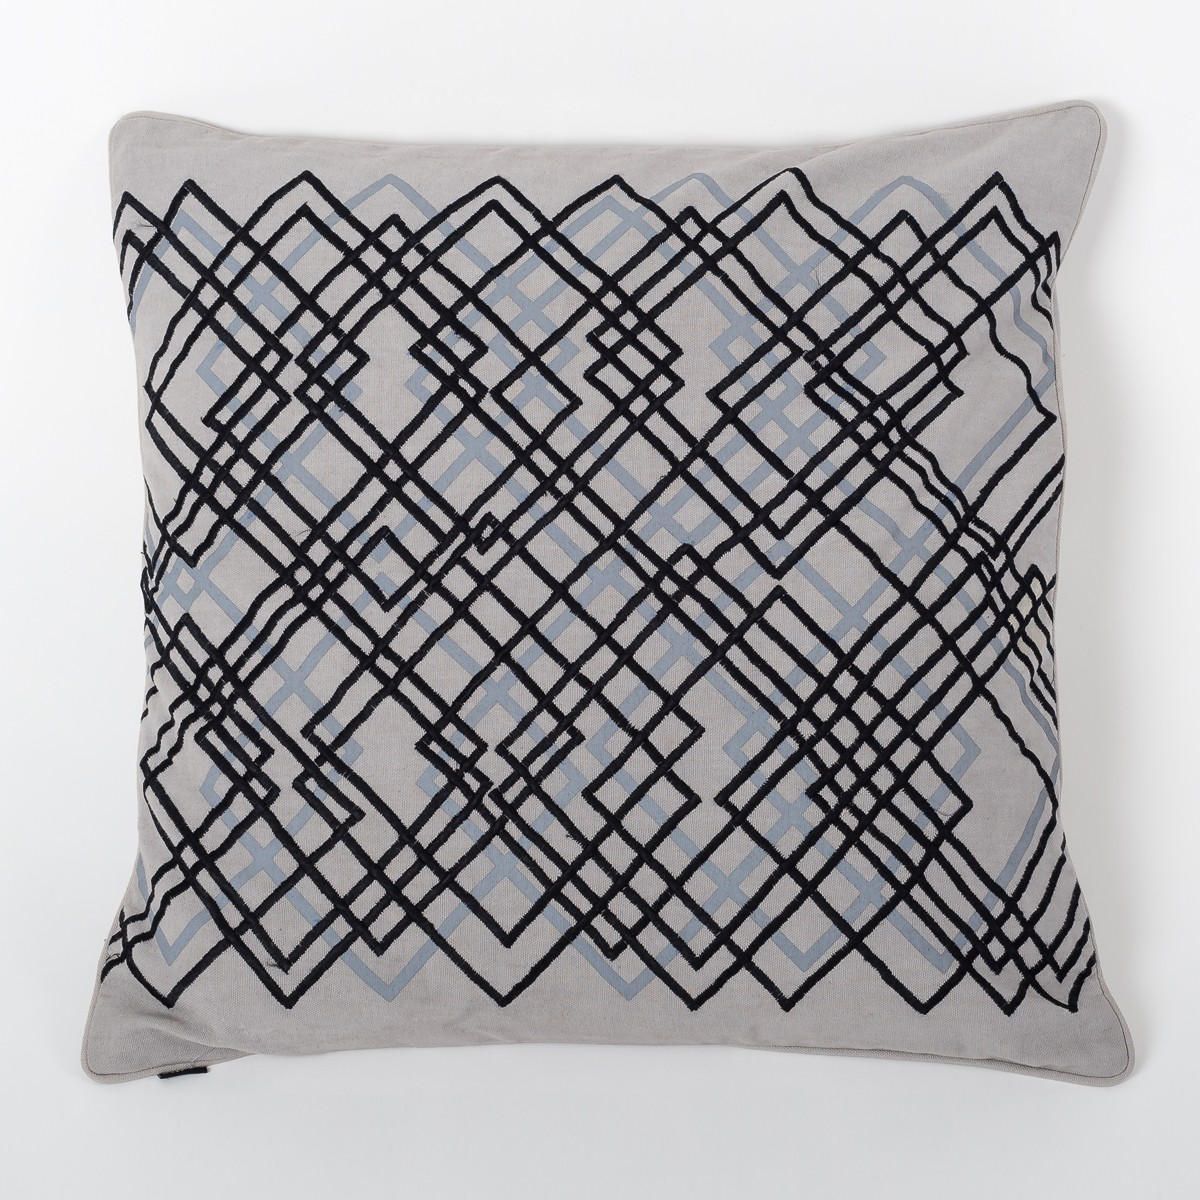 Laser Luna - Grey Cotton Cushion Cover with Thread Embroidery